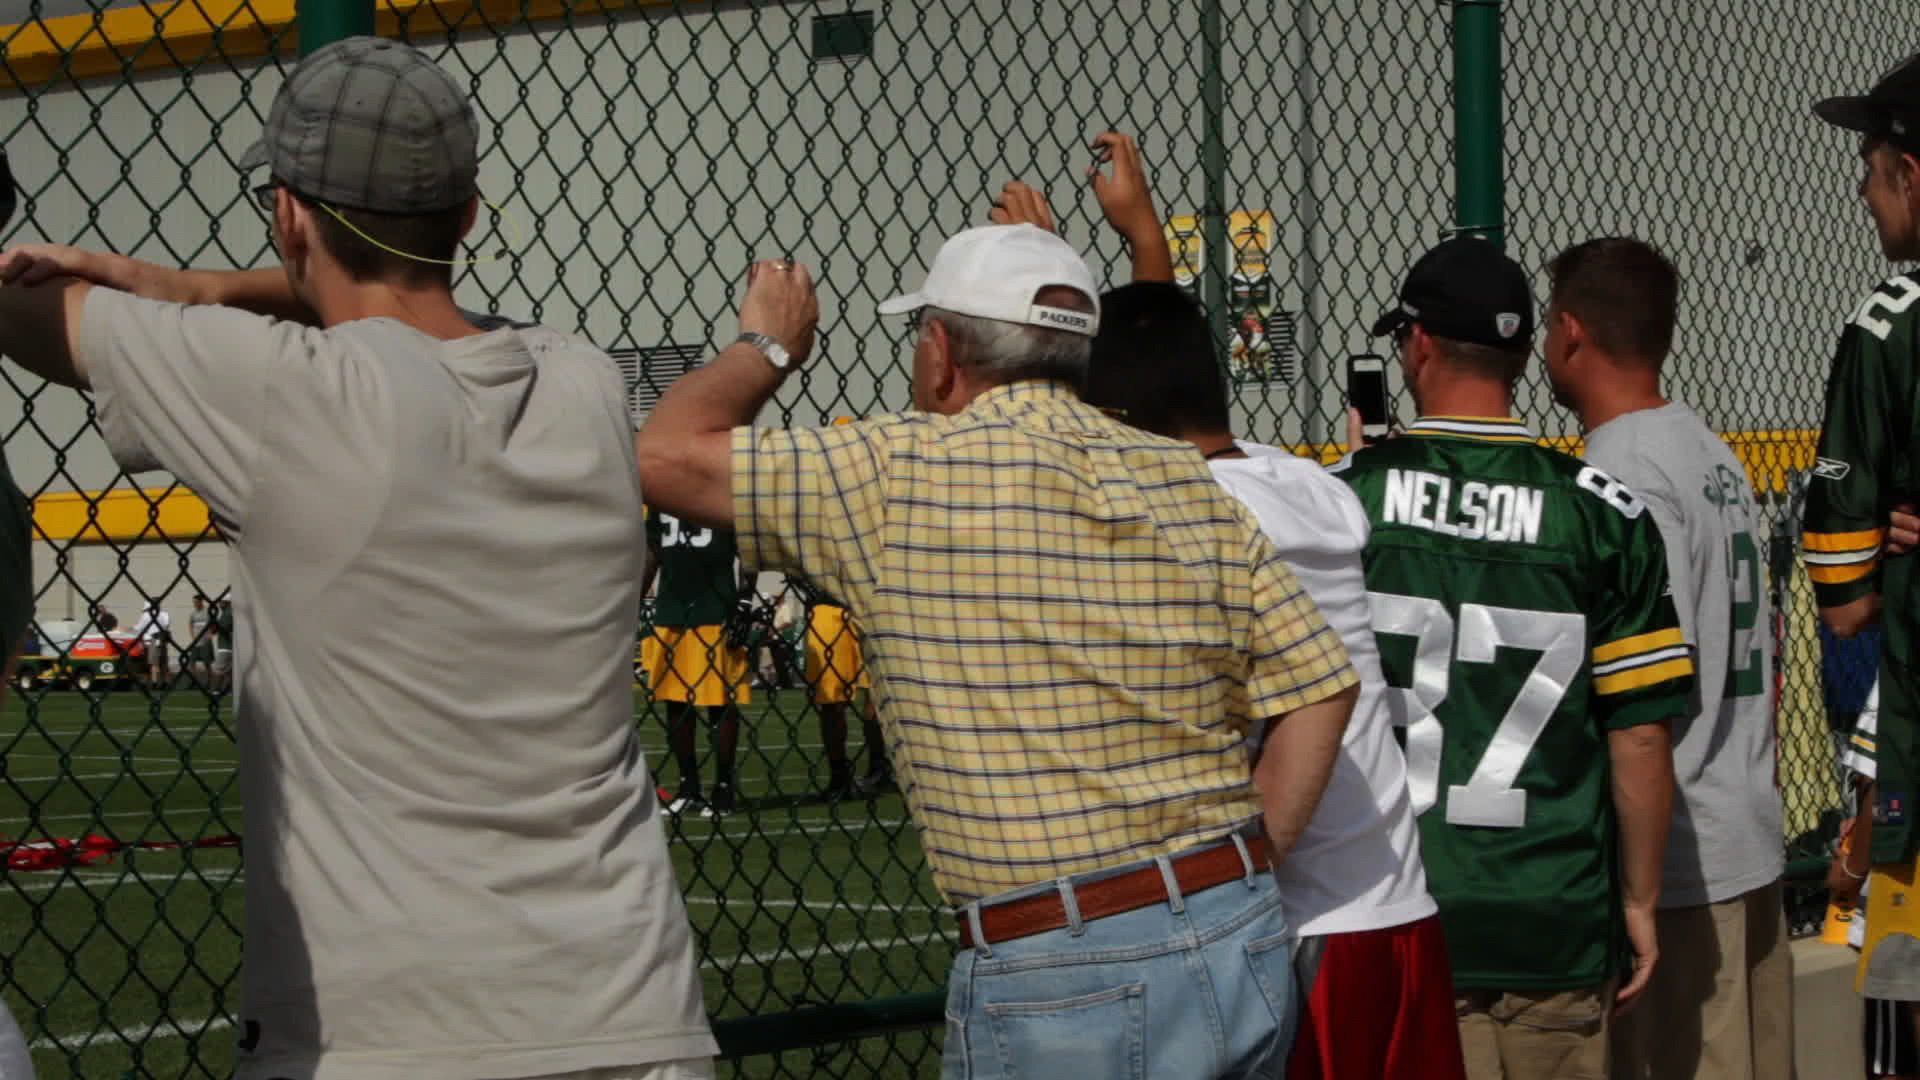 Packers Training Camp (July 2012)